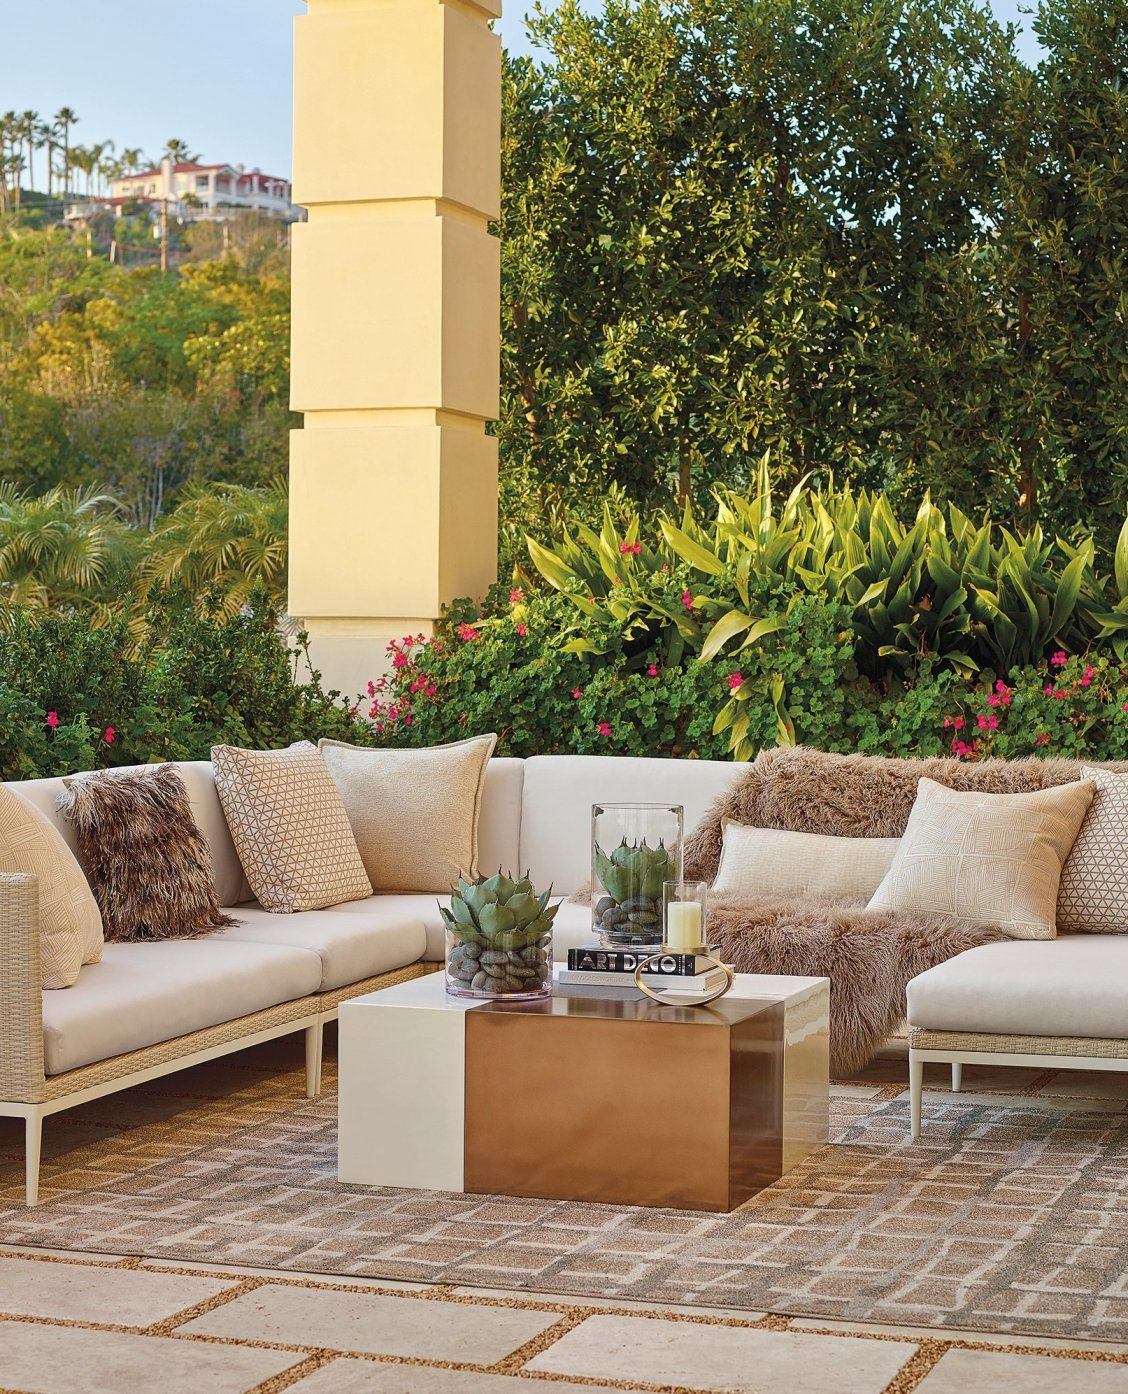 Palazzo Shell Modular Seating | Luxury outdoor furniture ... on Fine Living Patio Set id=98527